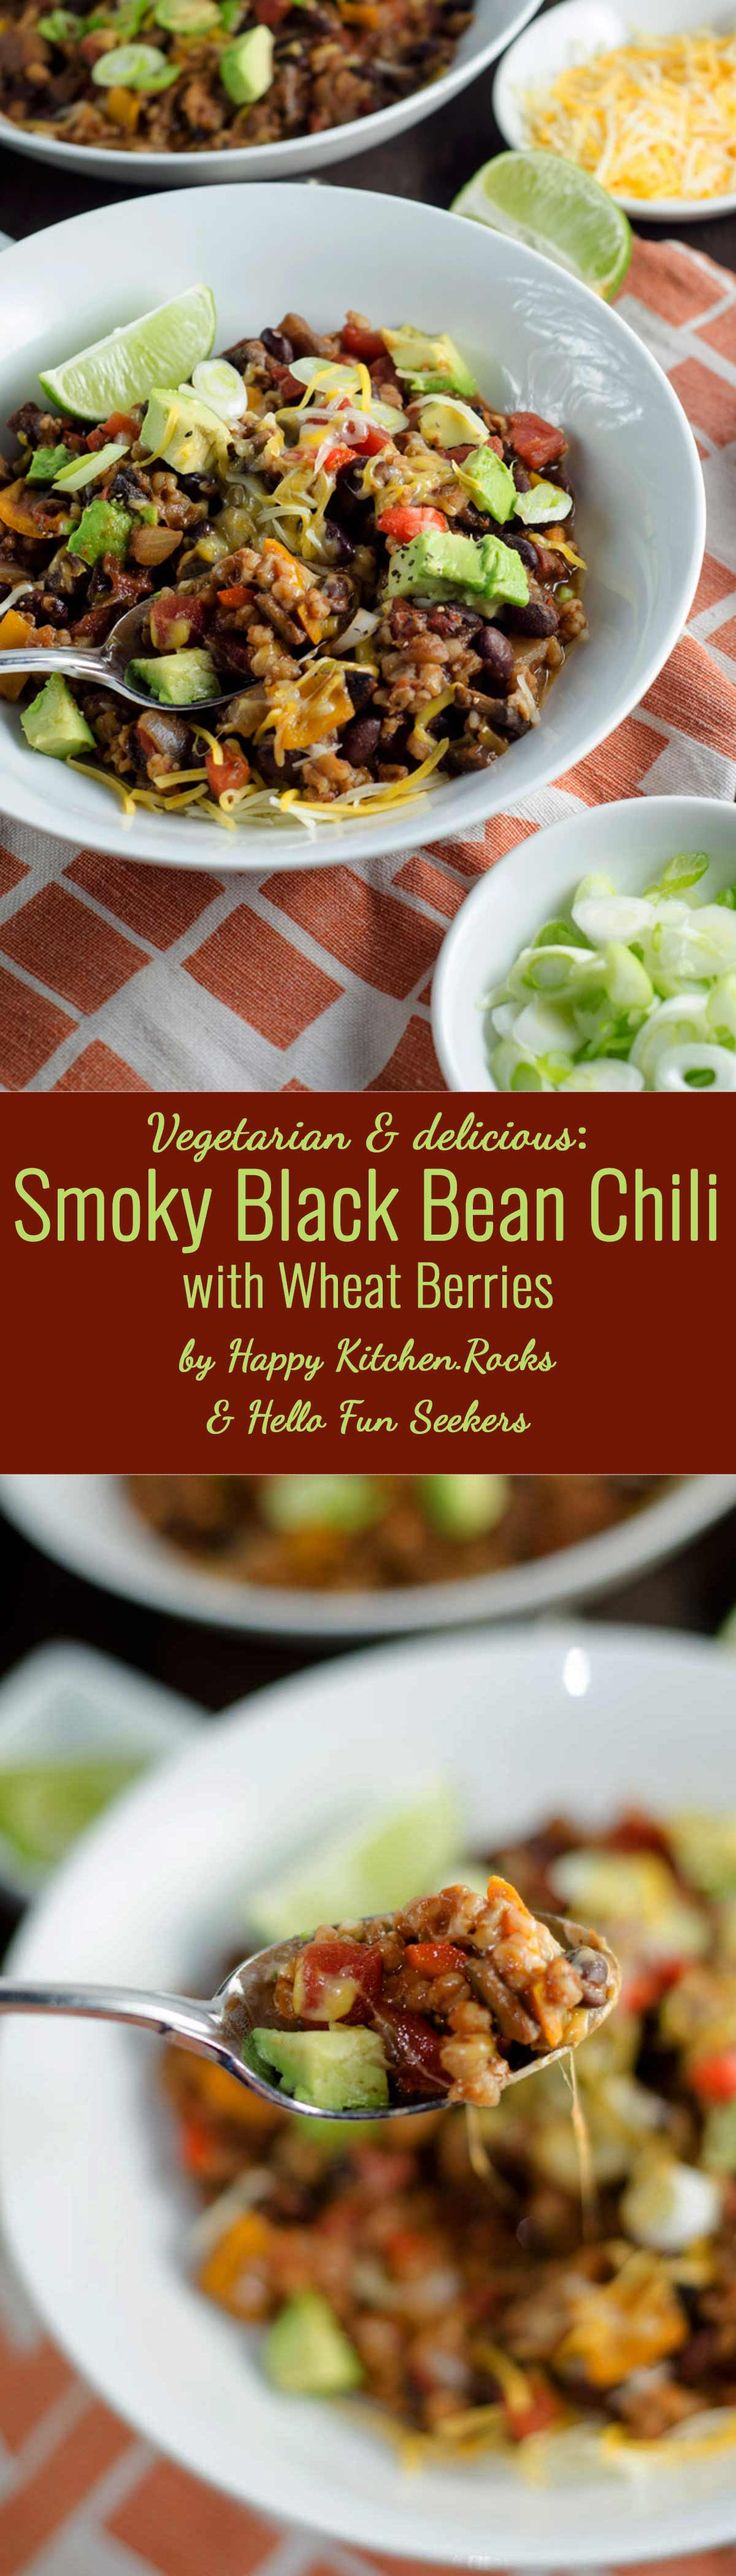 193 best happy kitchencks recipes images on pinterest easy delicious hearty and thick black bean chili recipe perfect for the cold season easy food recipes for lunch forumfinder Gallery